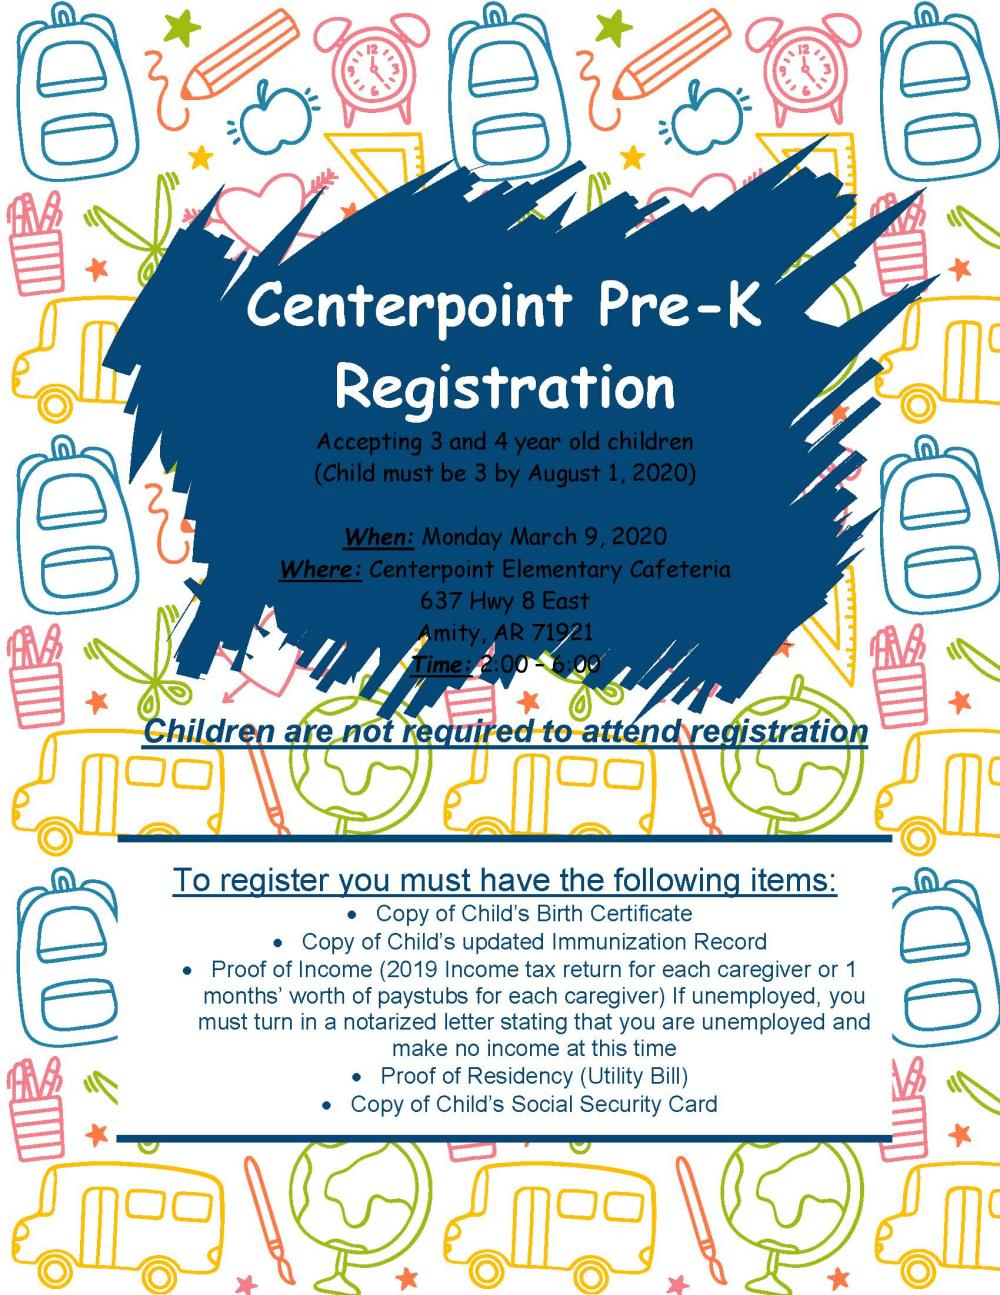 Thumbnail Image for Article Centerpoint Pre-K Registration